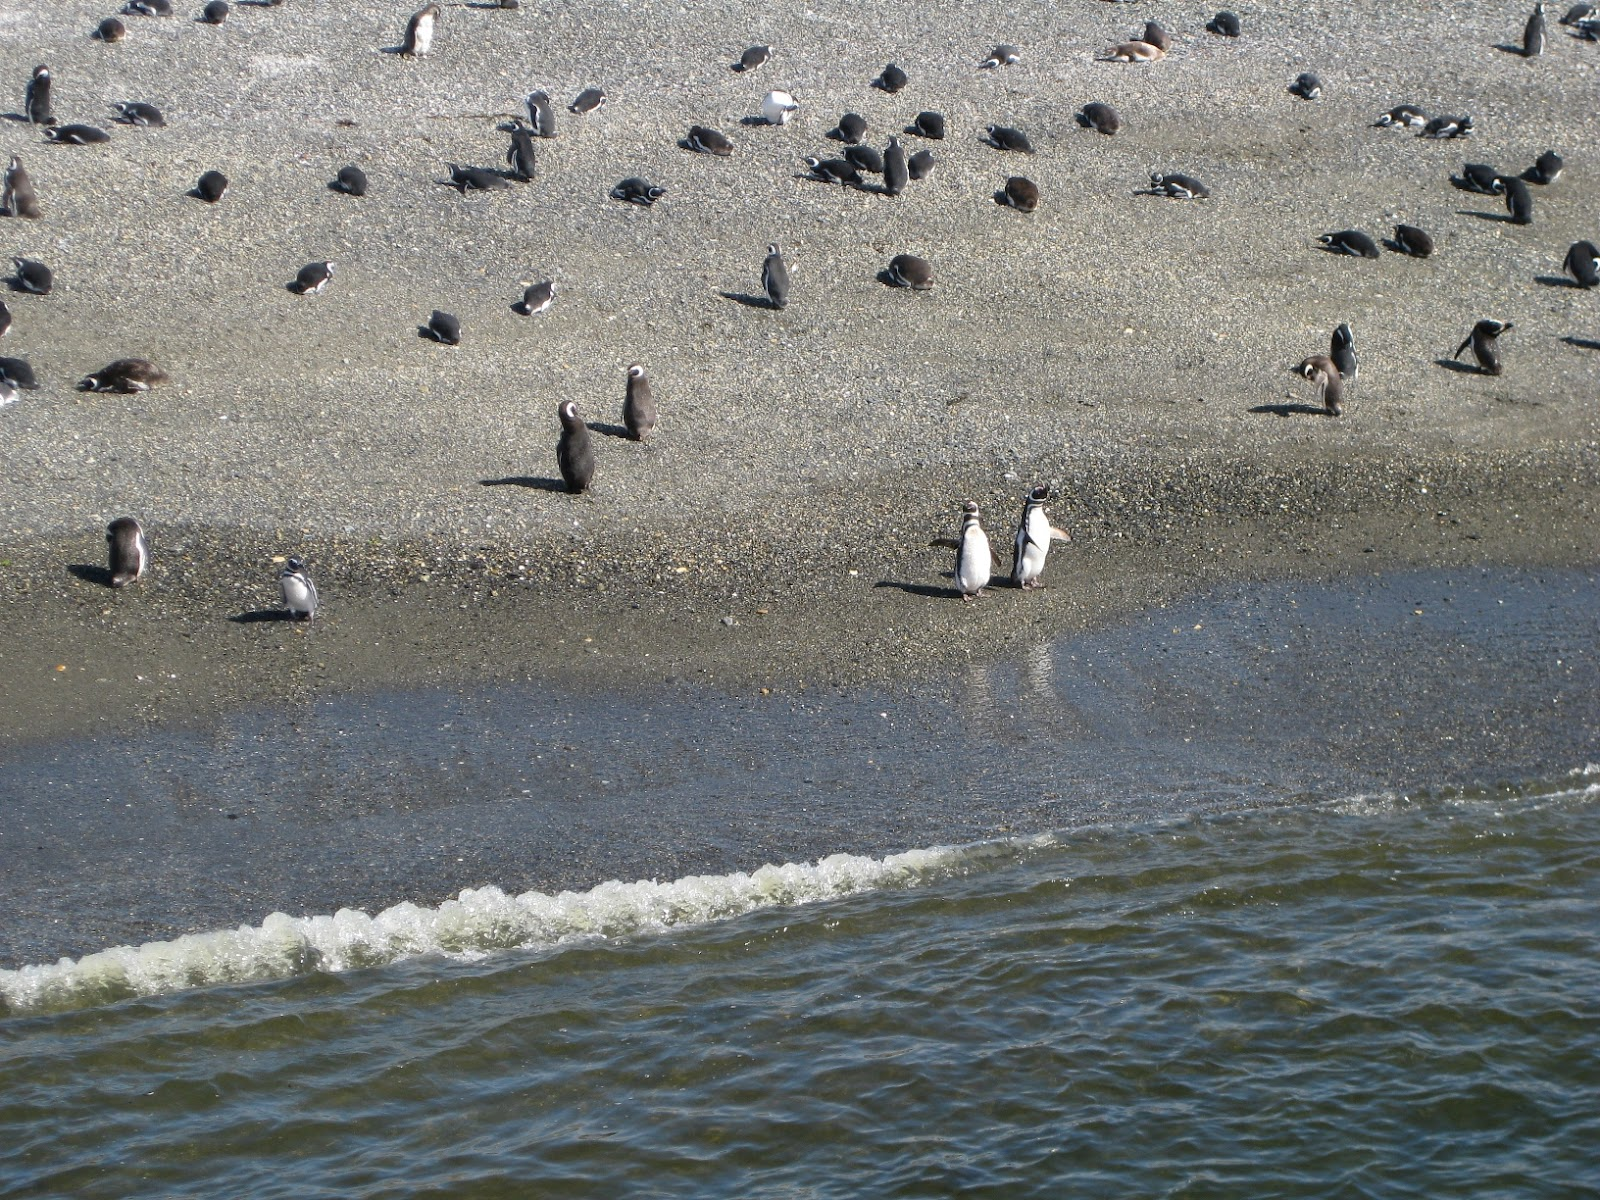 Mostly Magellanic penguins